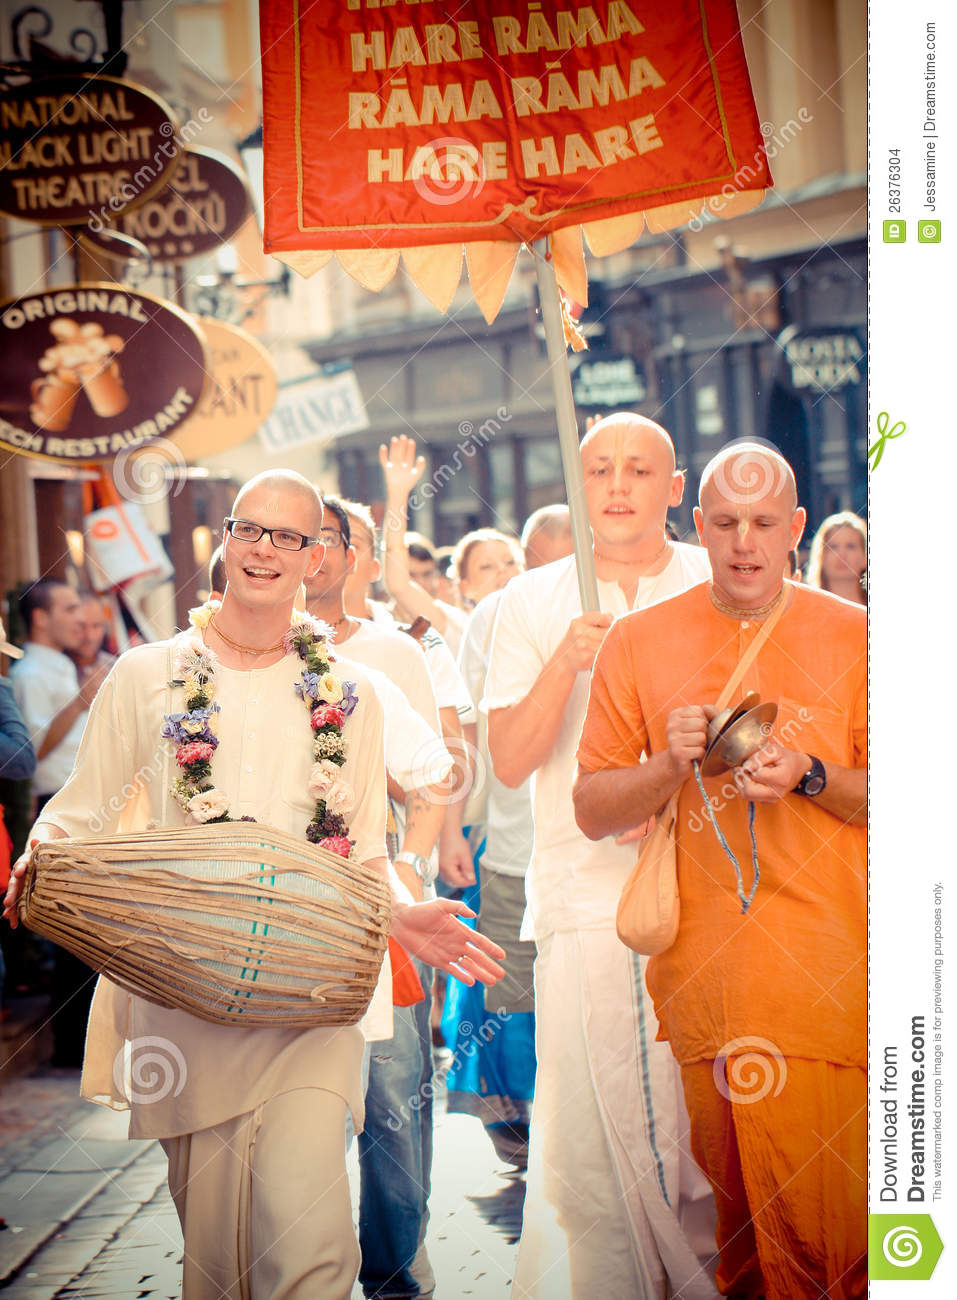 hare krishna online dating Hare krishna views of homosexuality, and especially the view of the international society for krishna consciousness (iskcon) towards lgbt issues, are similar to their views of heterosexual relationships, ie because the living entity is identifying with the body, any attraction based on the desire to gratify the body and its.